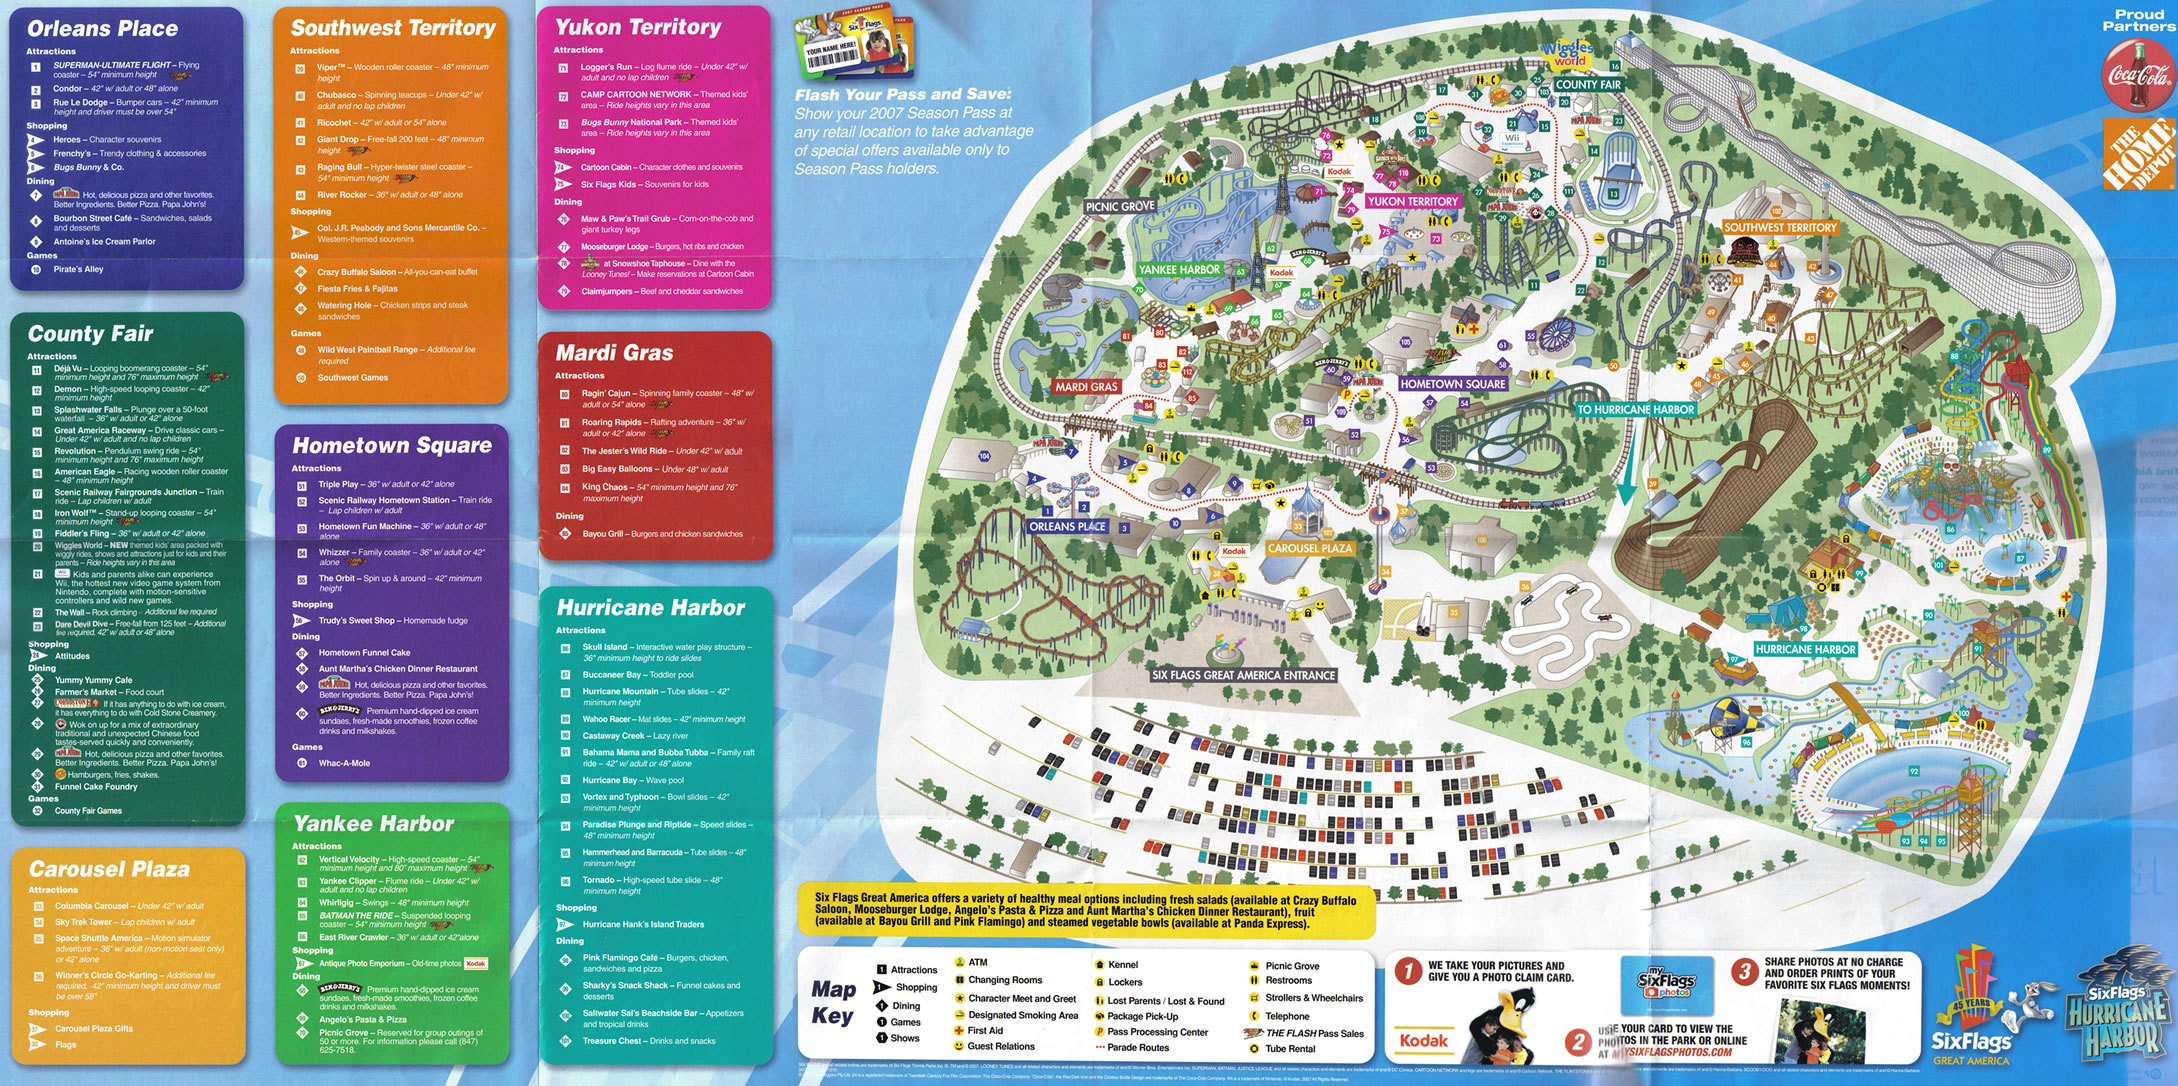 Six Flags Great America Theme Park Map Gurnee IL mappery